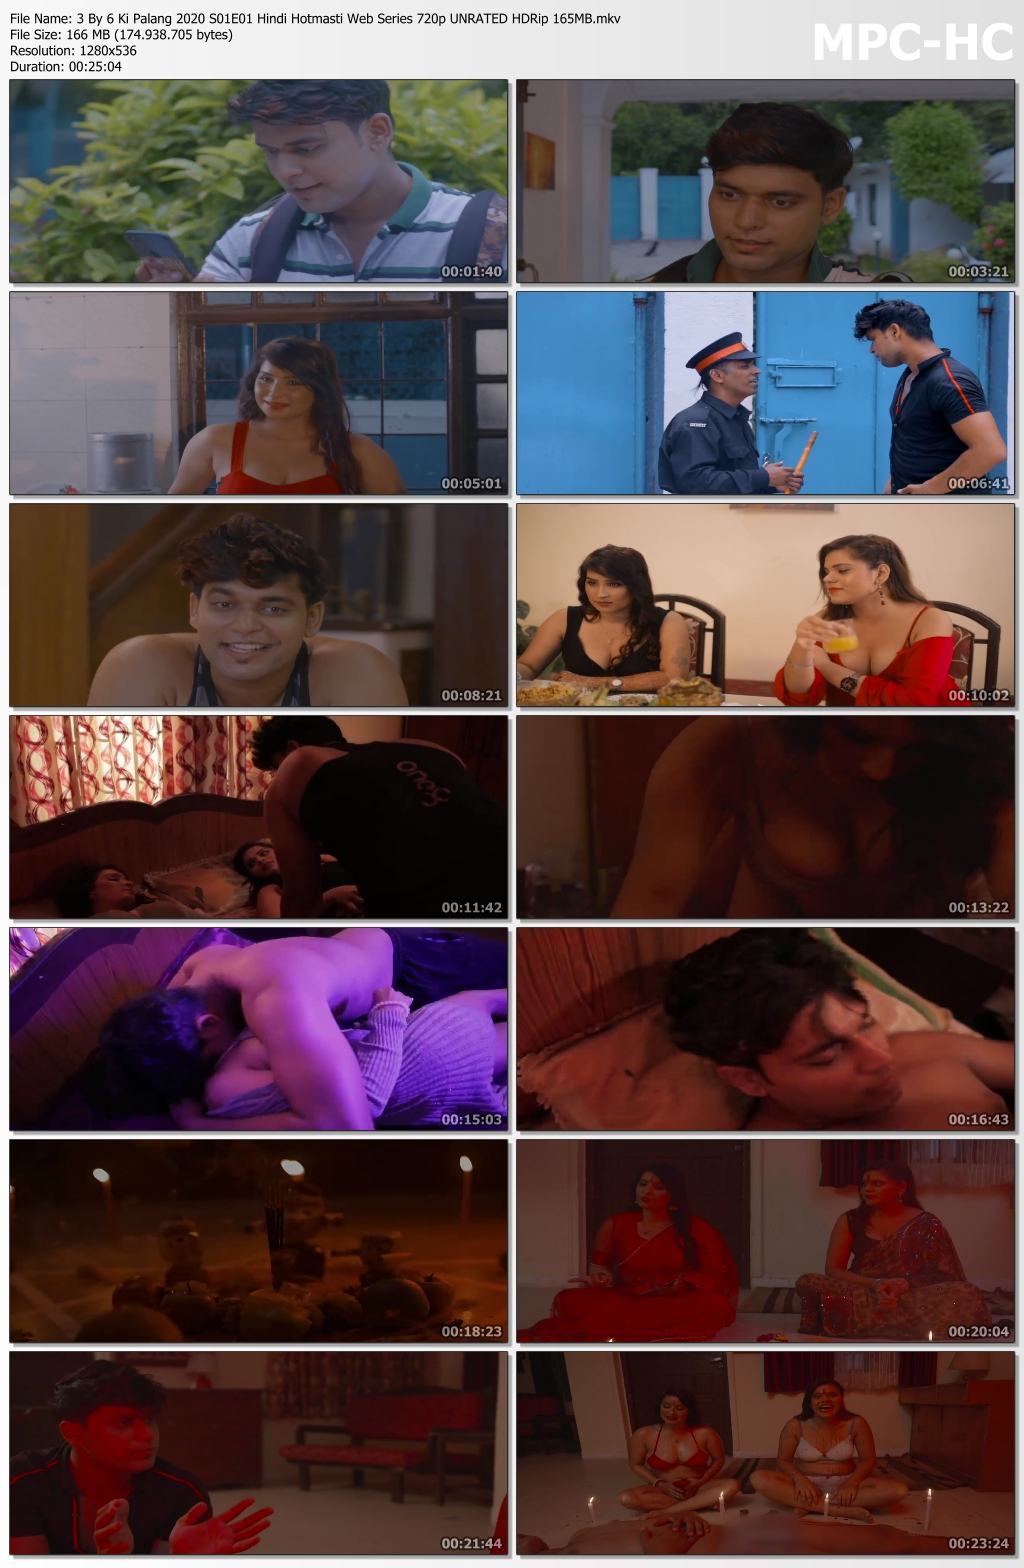 3-By-6-Ki-Palang-2020-S01-E01-Hindi-Hotmasti-Web-Series-720p-UNRATED-HDRip-165-MB-mkv-thumbs